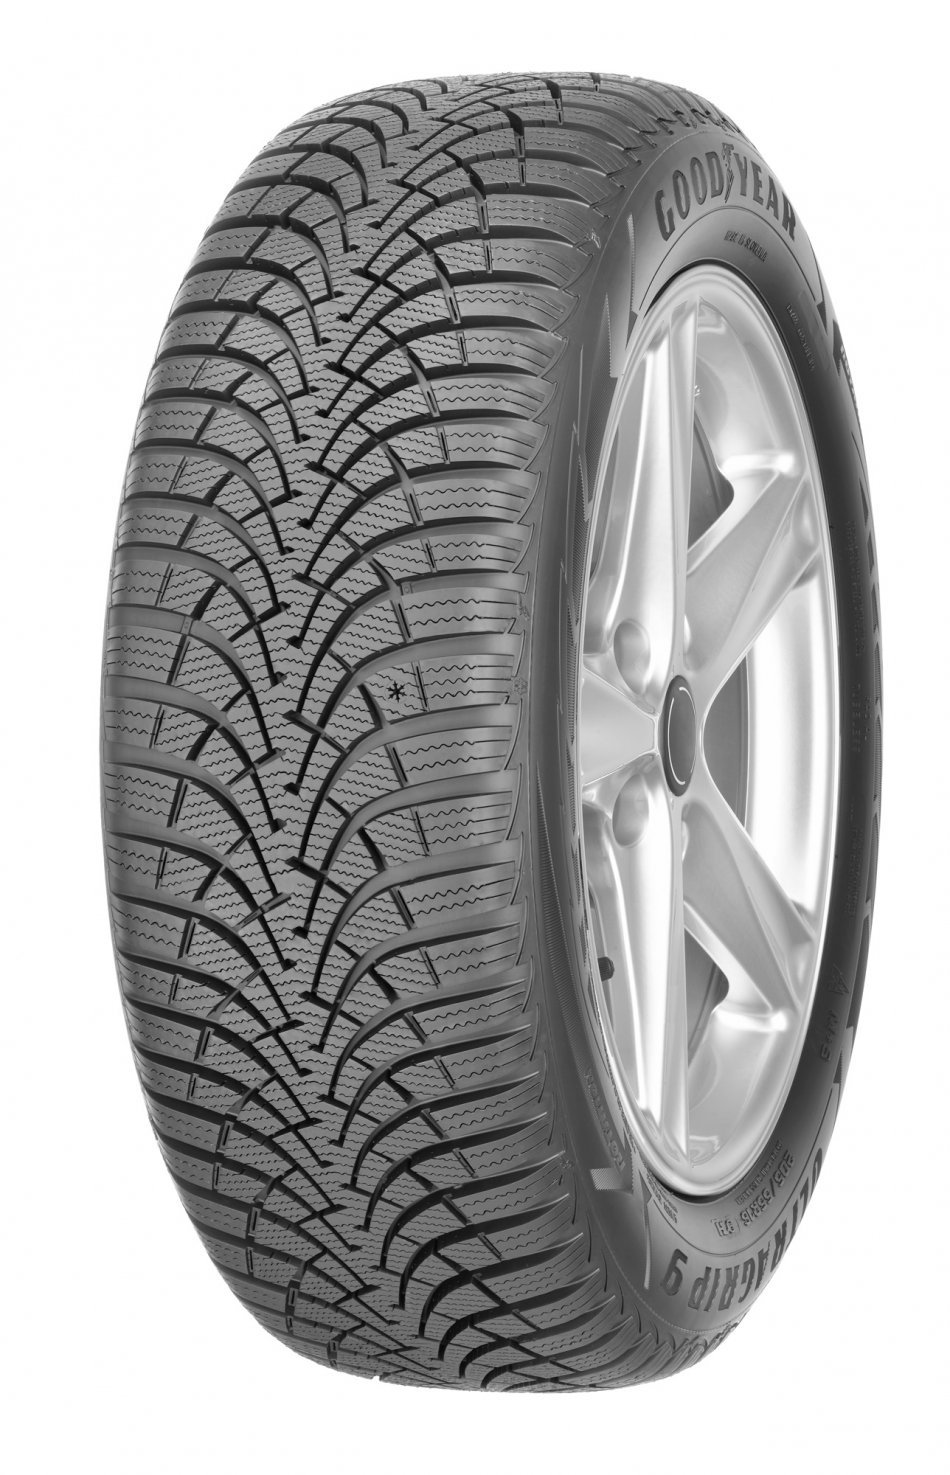 195/65R15 91T Goodyear UltraGrip 9